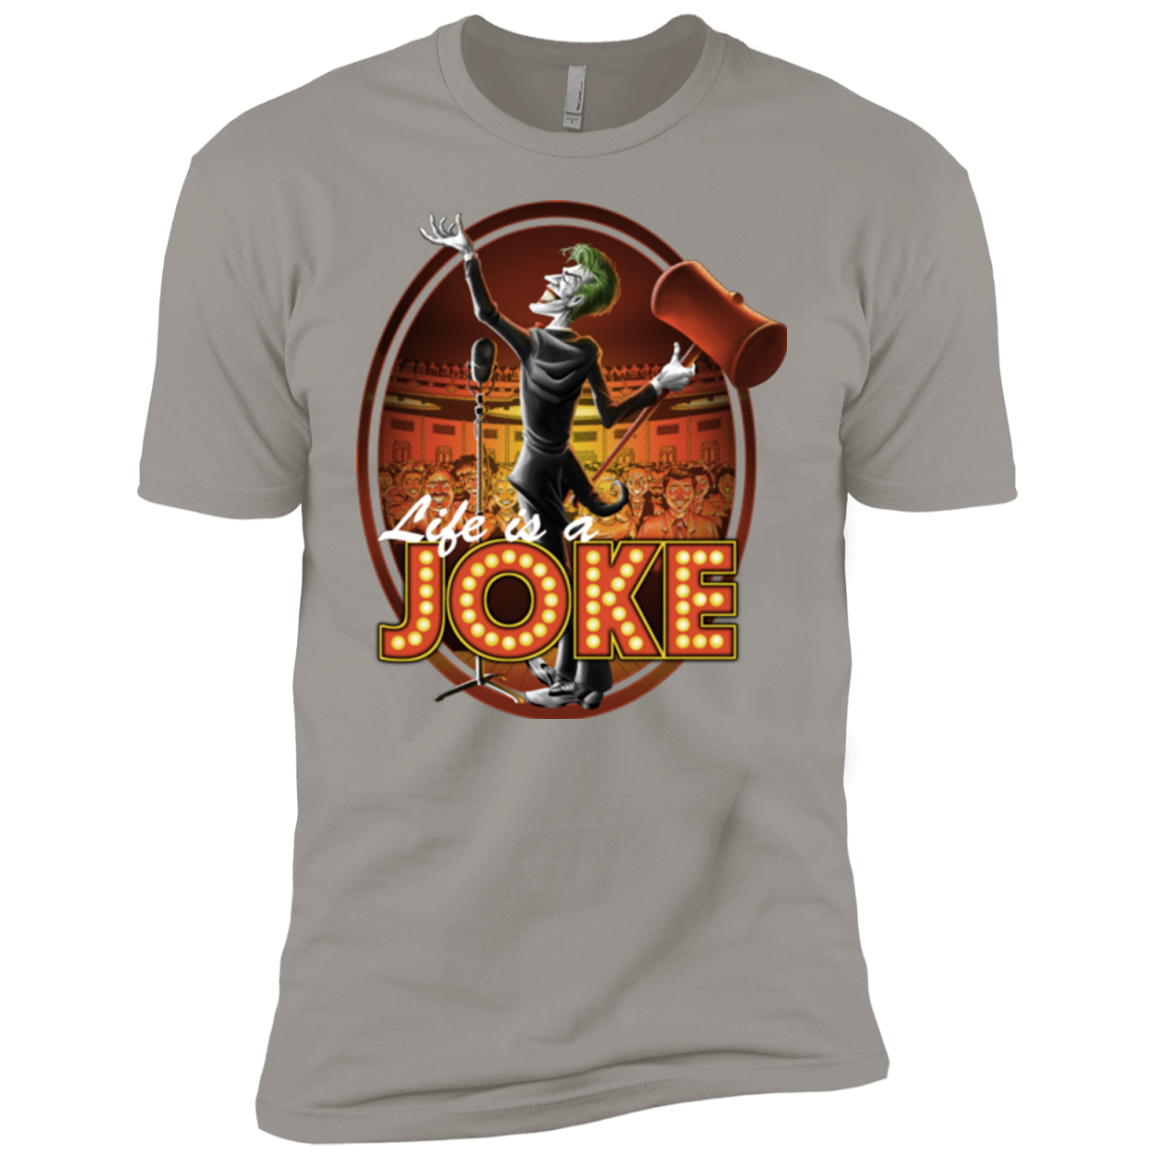 Life Is A Joke Boys Premium T-Shirt